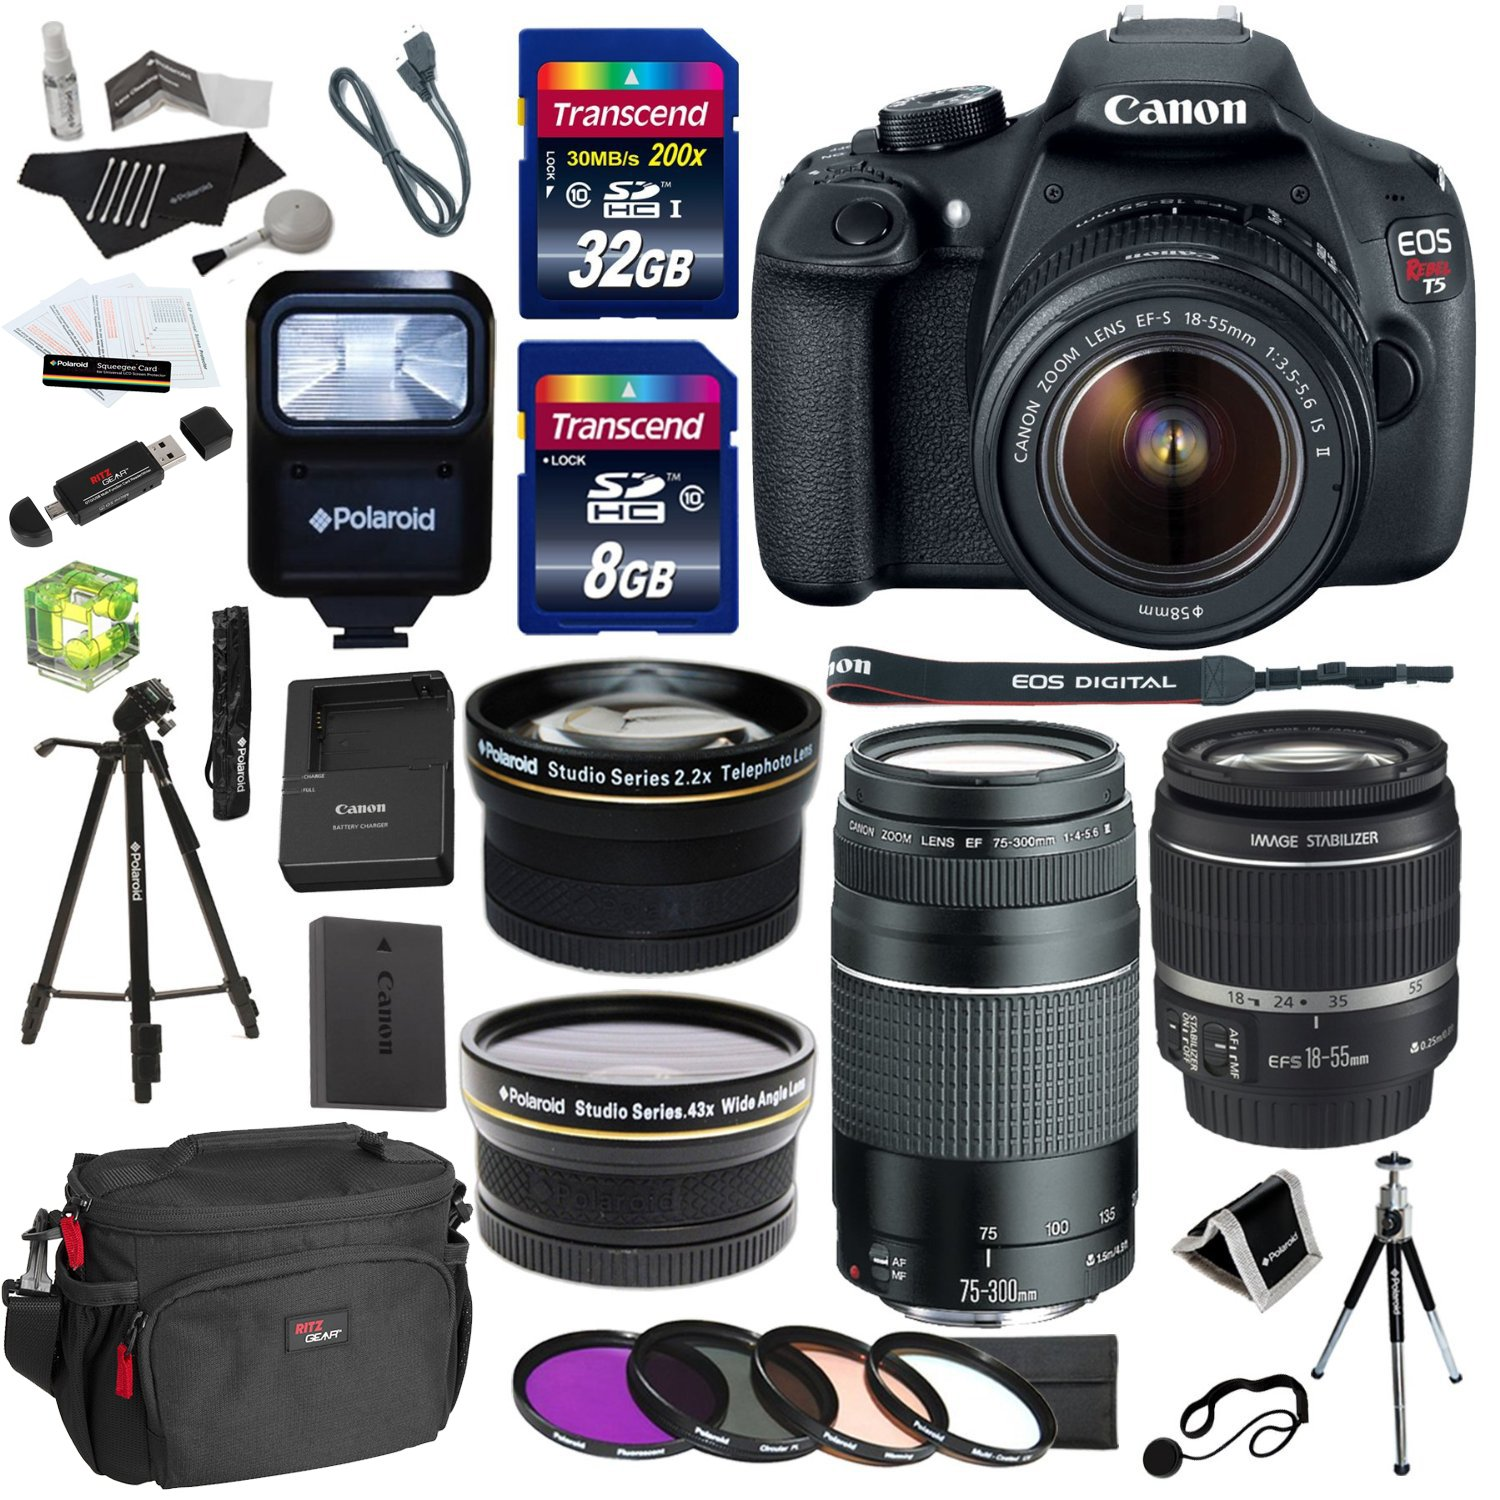 Canon EOS Rebel T5 Digital SLR Camera Body with EF-S 18-55mm IS + EF 75-300mm f/4-5.6 III + Polaroid Studio Series 58mm Wide Angle and 58mm Fixed Telephoto Lenses  ..